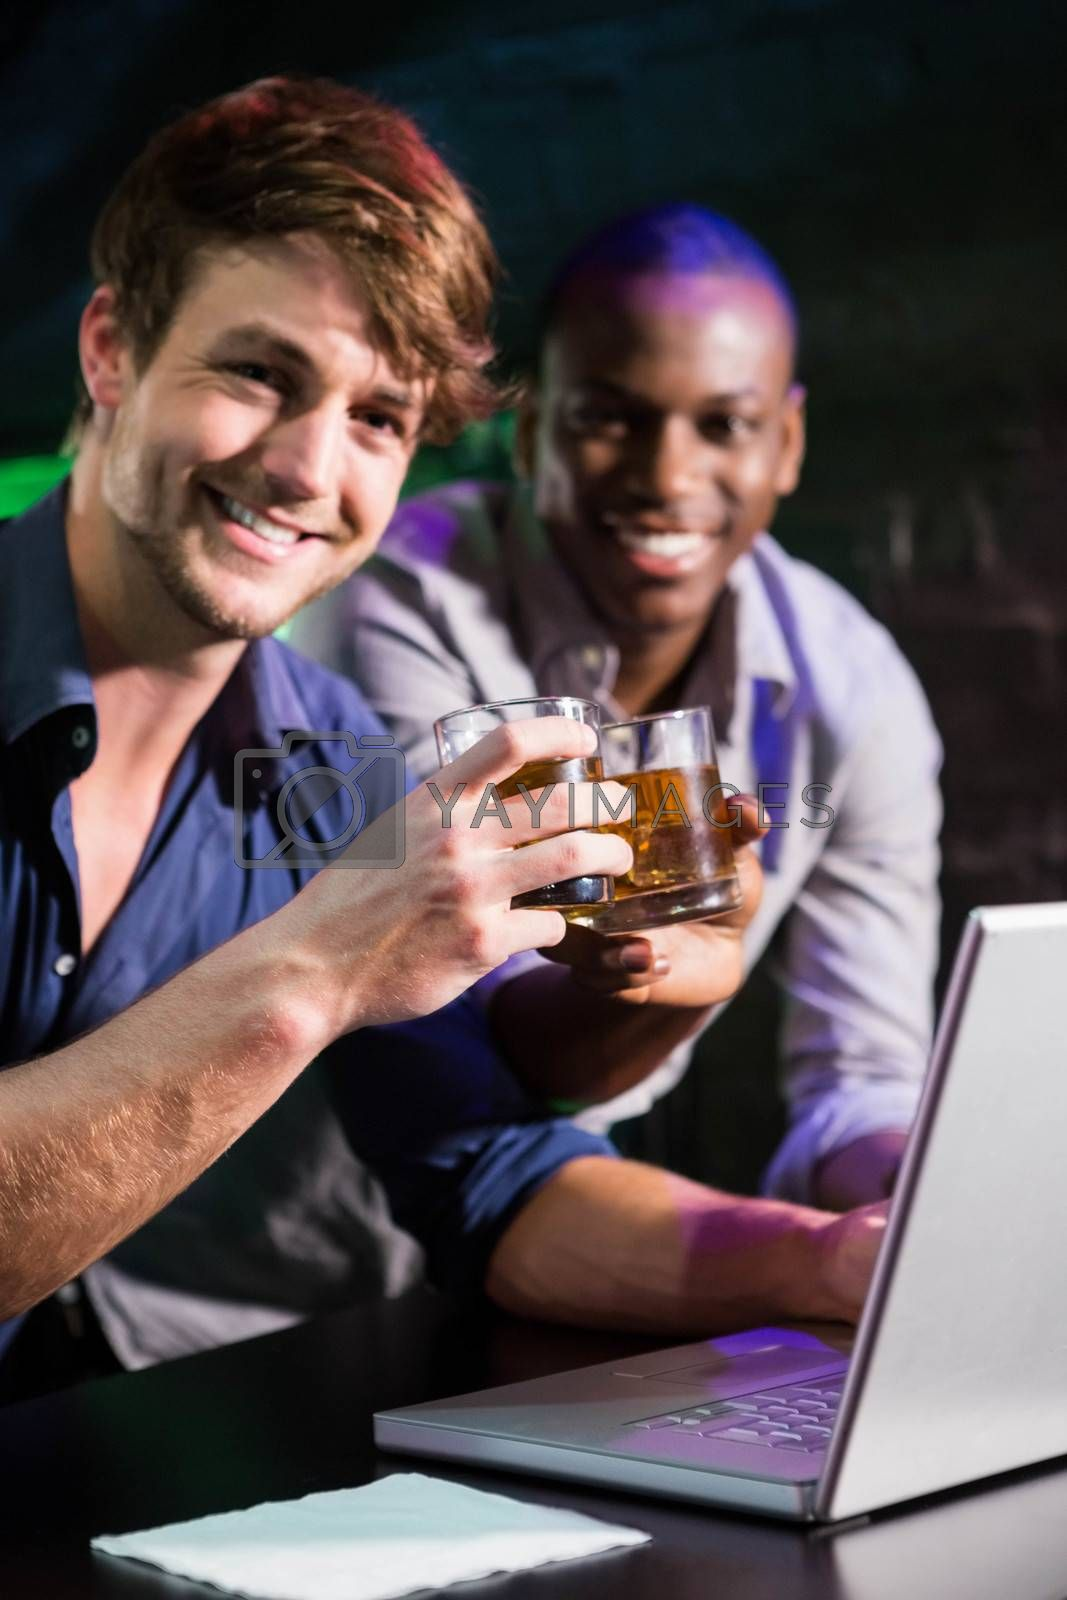 Two men toasting their whiskey glasses at bar counter while using laptop